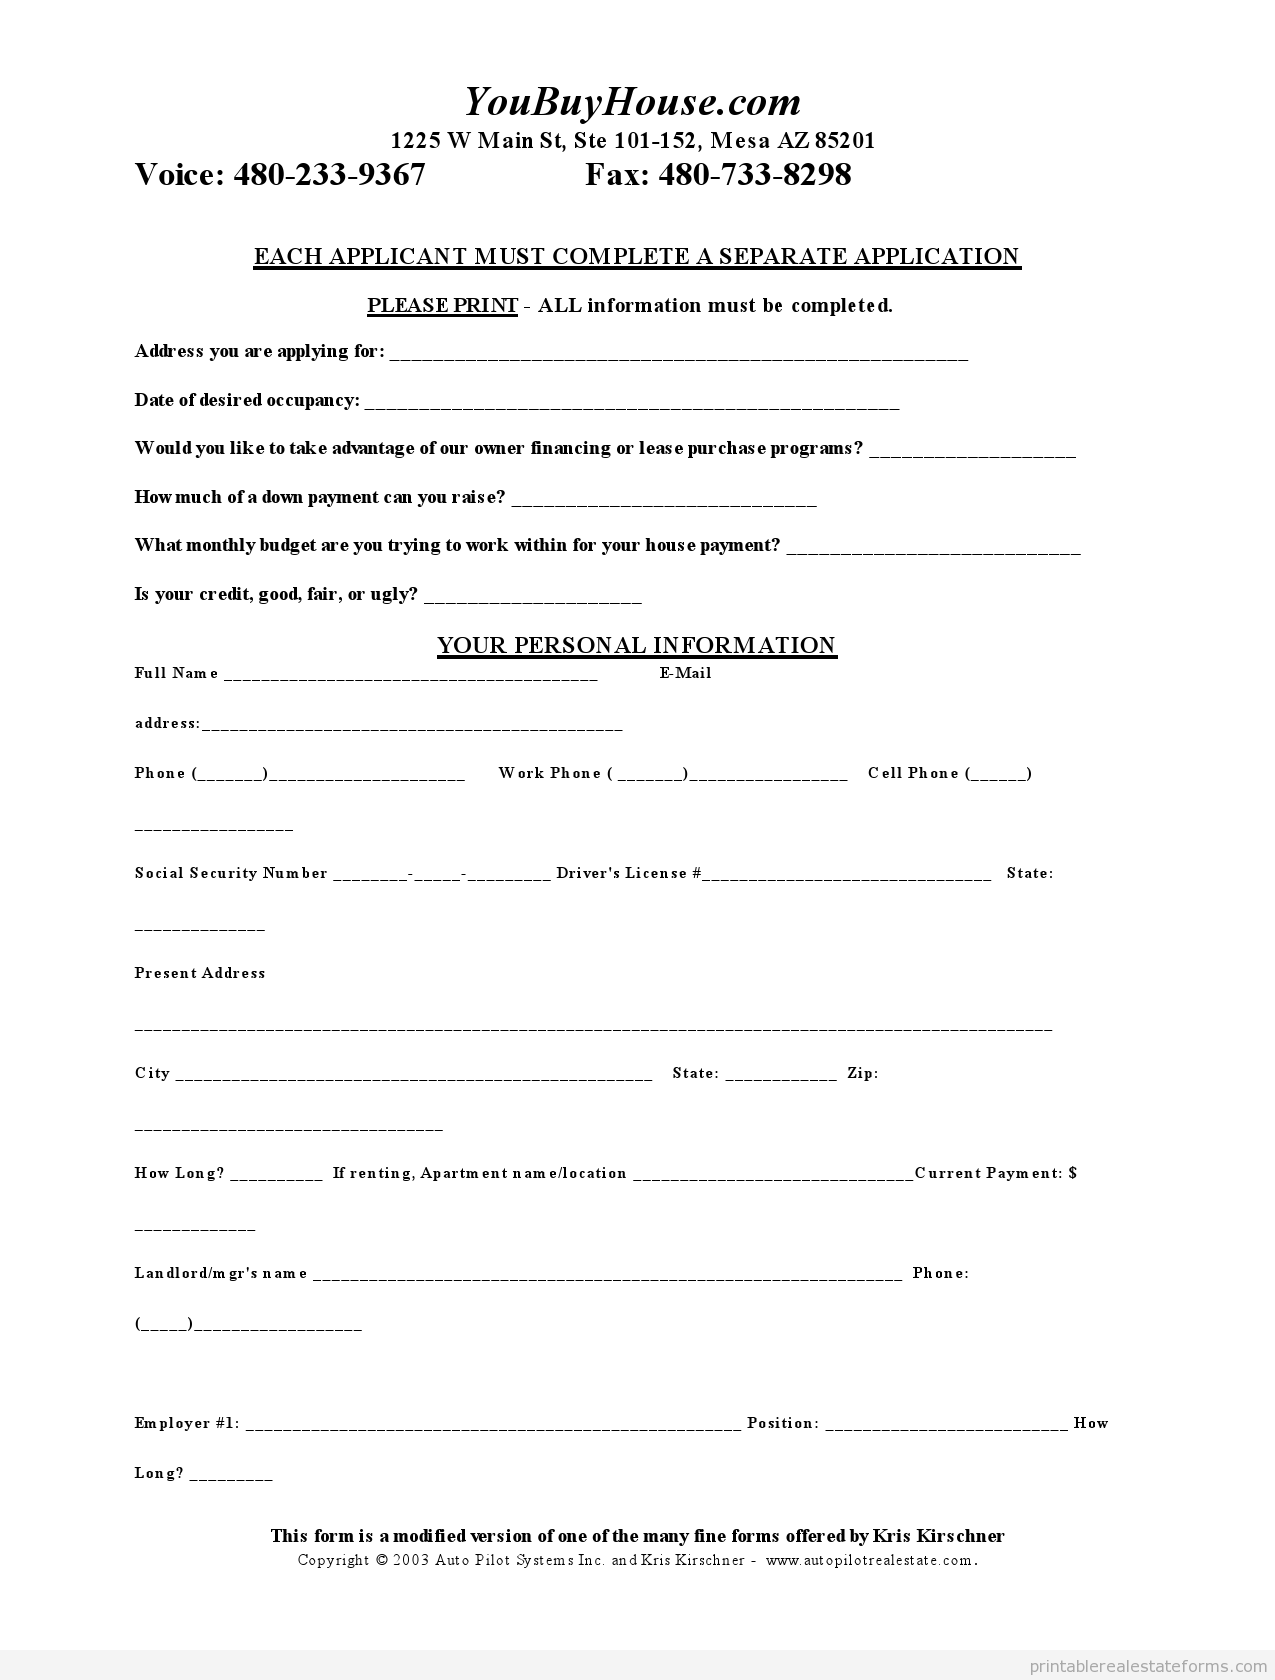 Sample Printable Short Credit Application Form  Printable Real